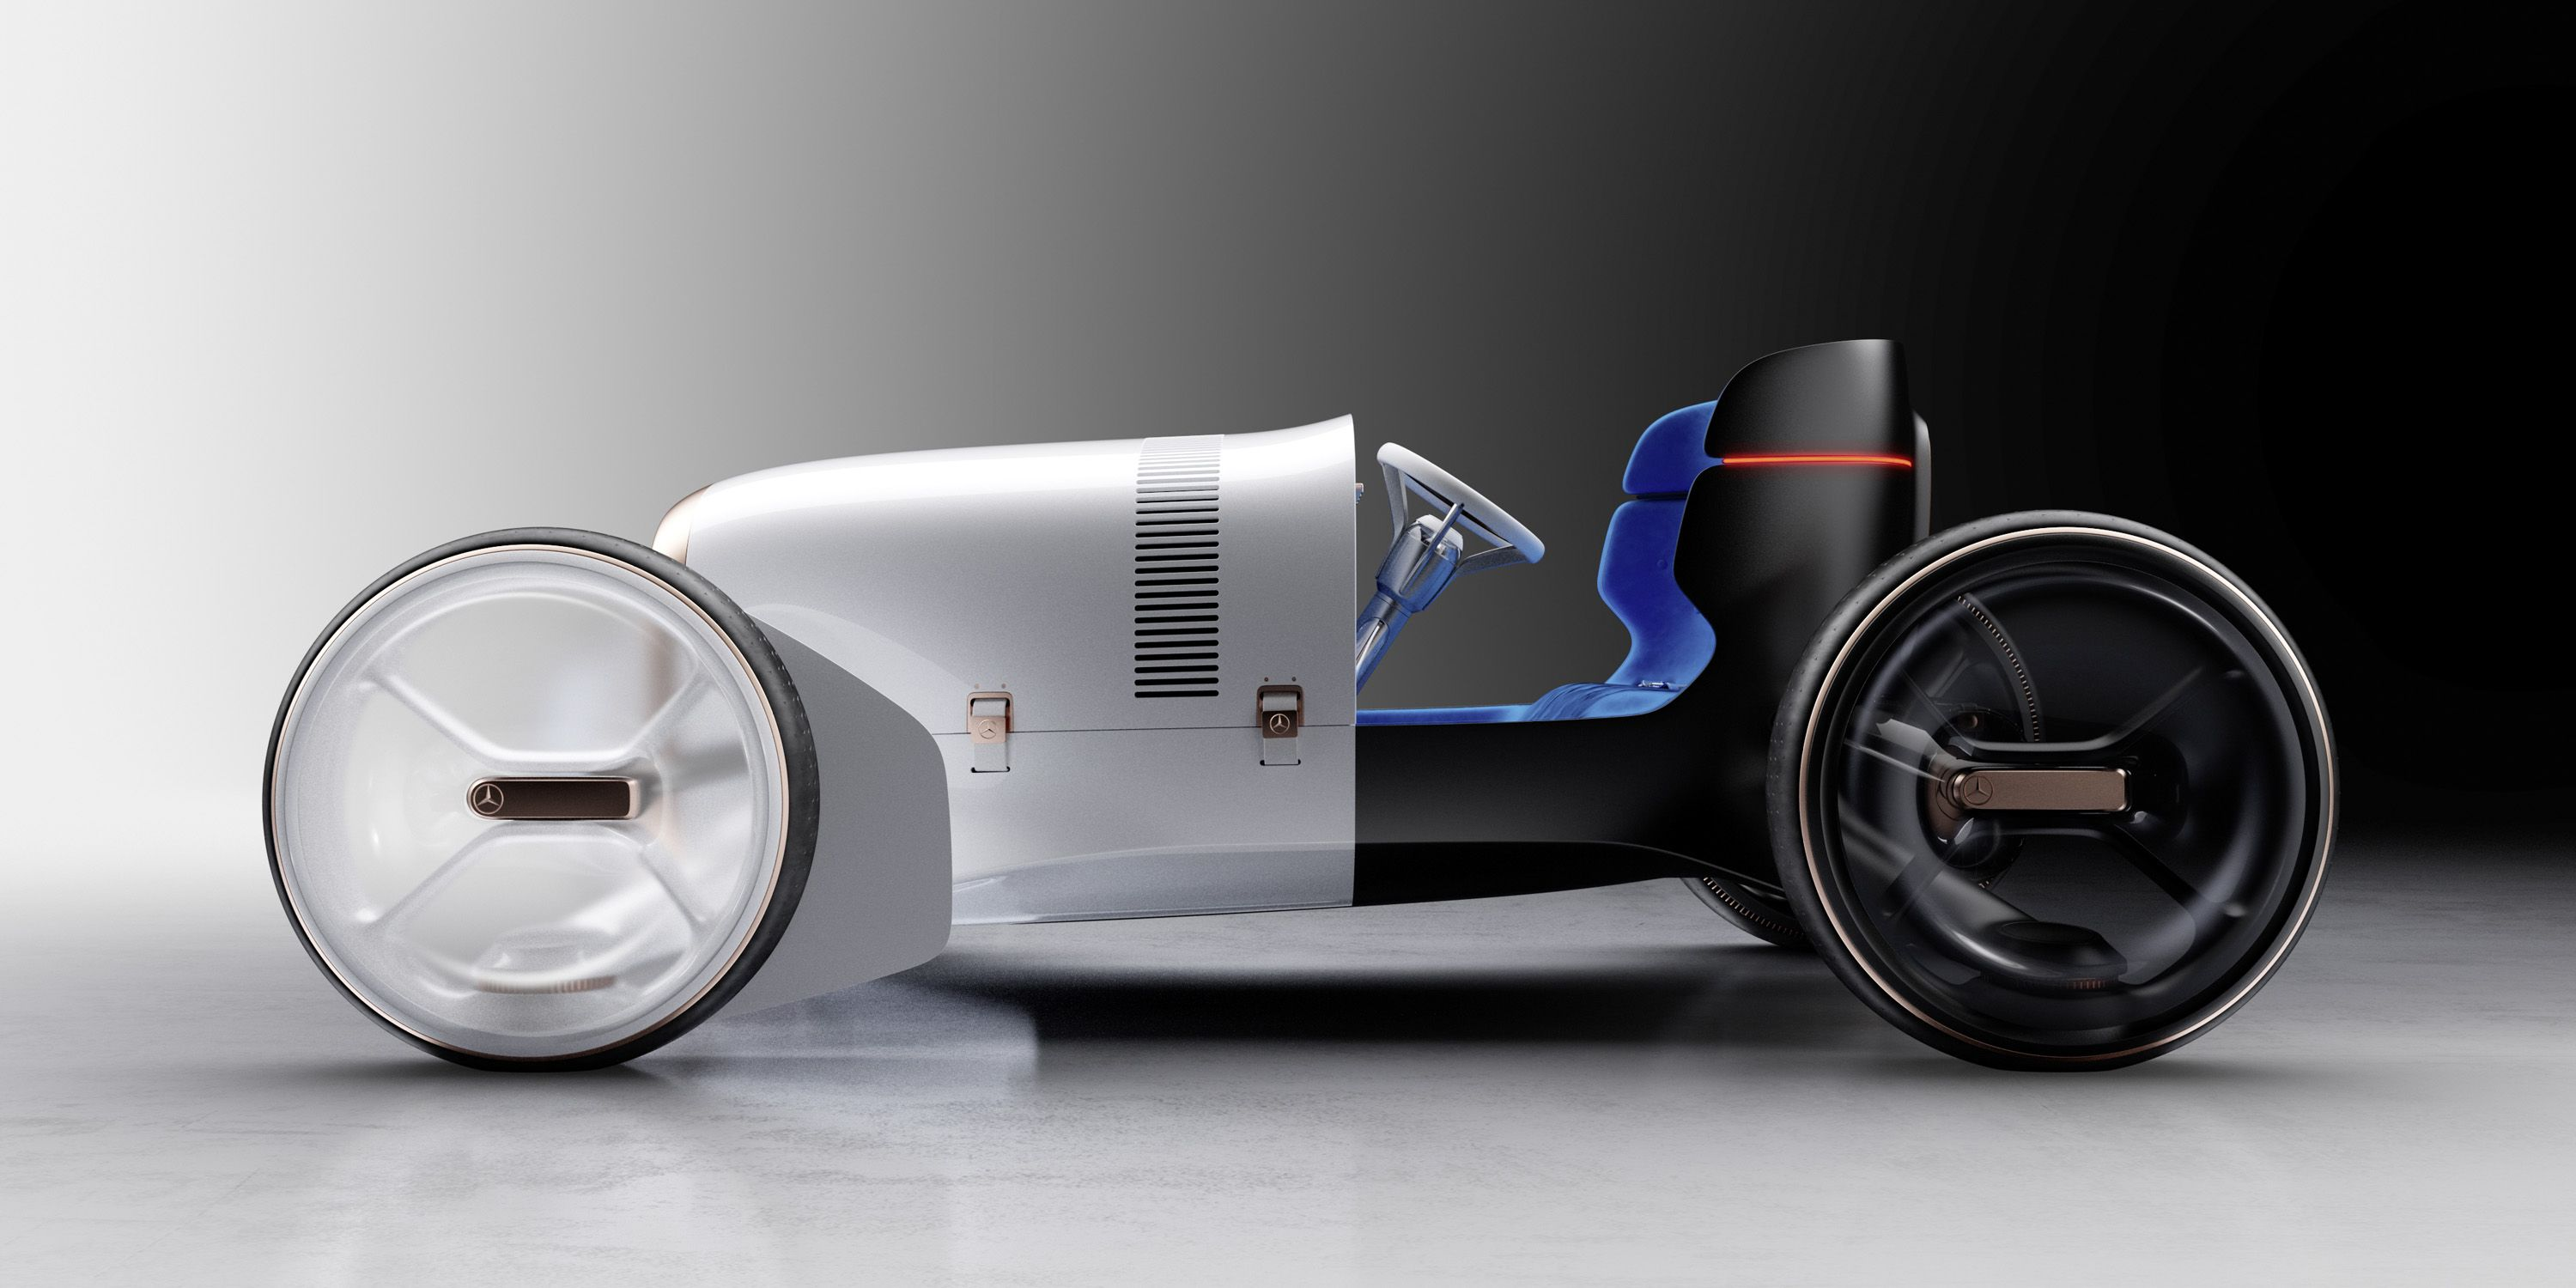 Mercedes-Benz's Latest Concept Is the Raddest EV Hot Rod You've Ever Seen